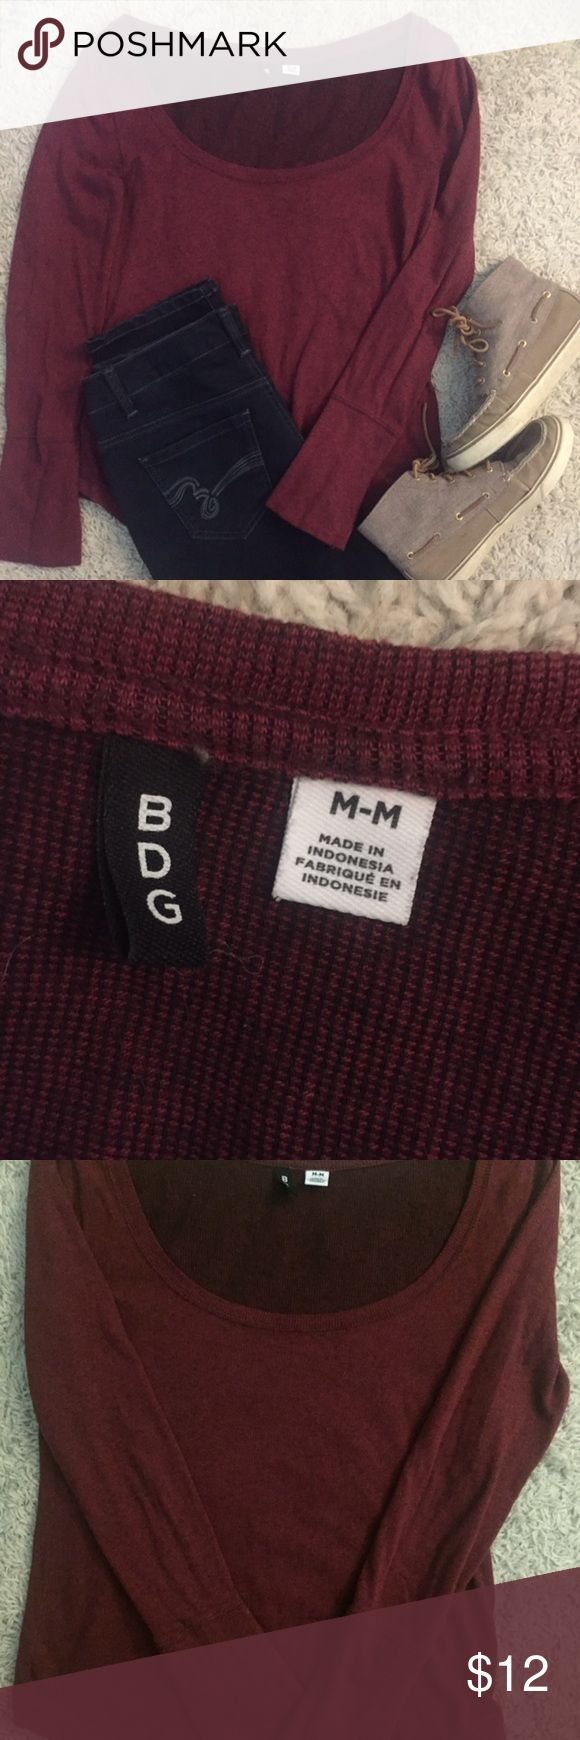 BDG, long sleeve sweater, size M BDG, long sleeve sweater, size M, burgundy, very soft, this light sweater is in used condition as shown in last photos.  It looks so much better in person than close up photos but just wanted to be sure you can see before it is purchased. Super soft and cute! BDG Tops Tees - Long Sleeve